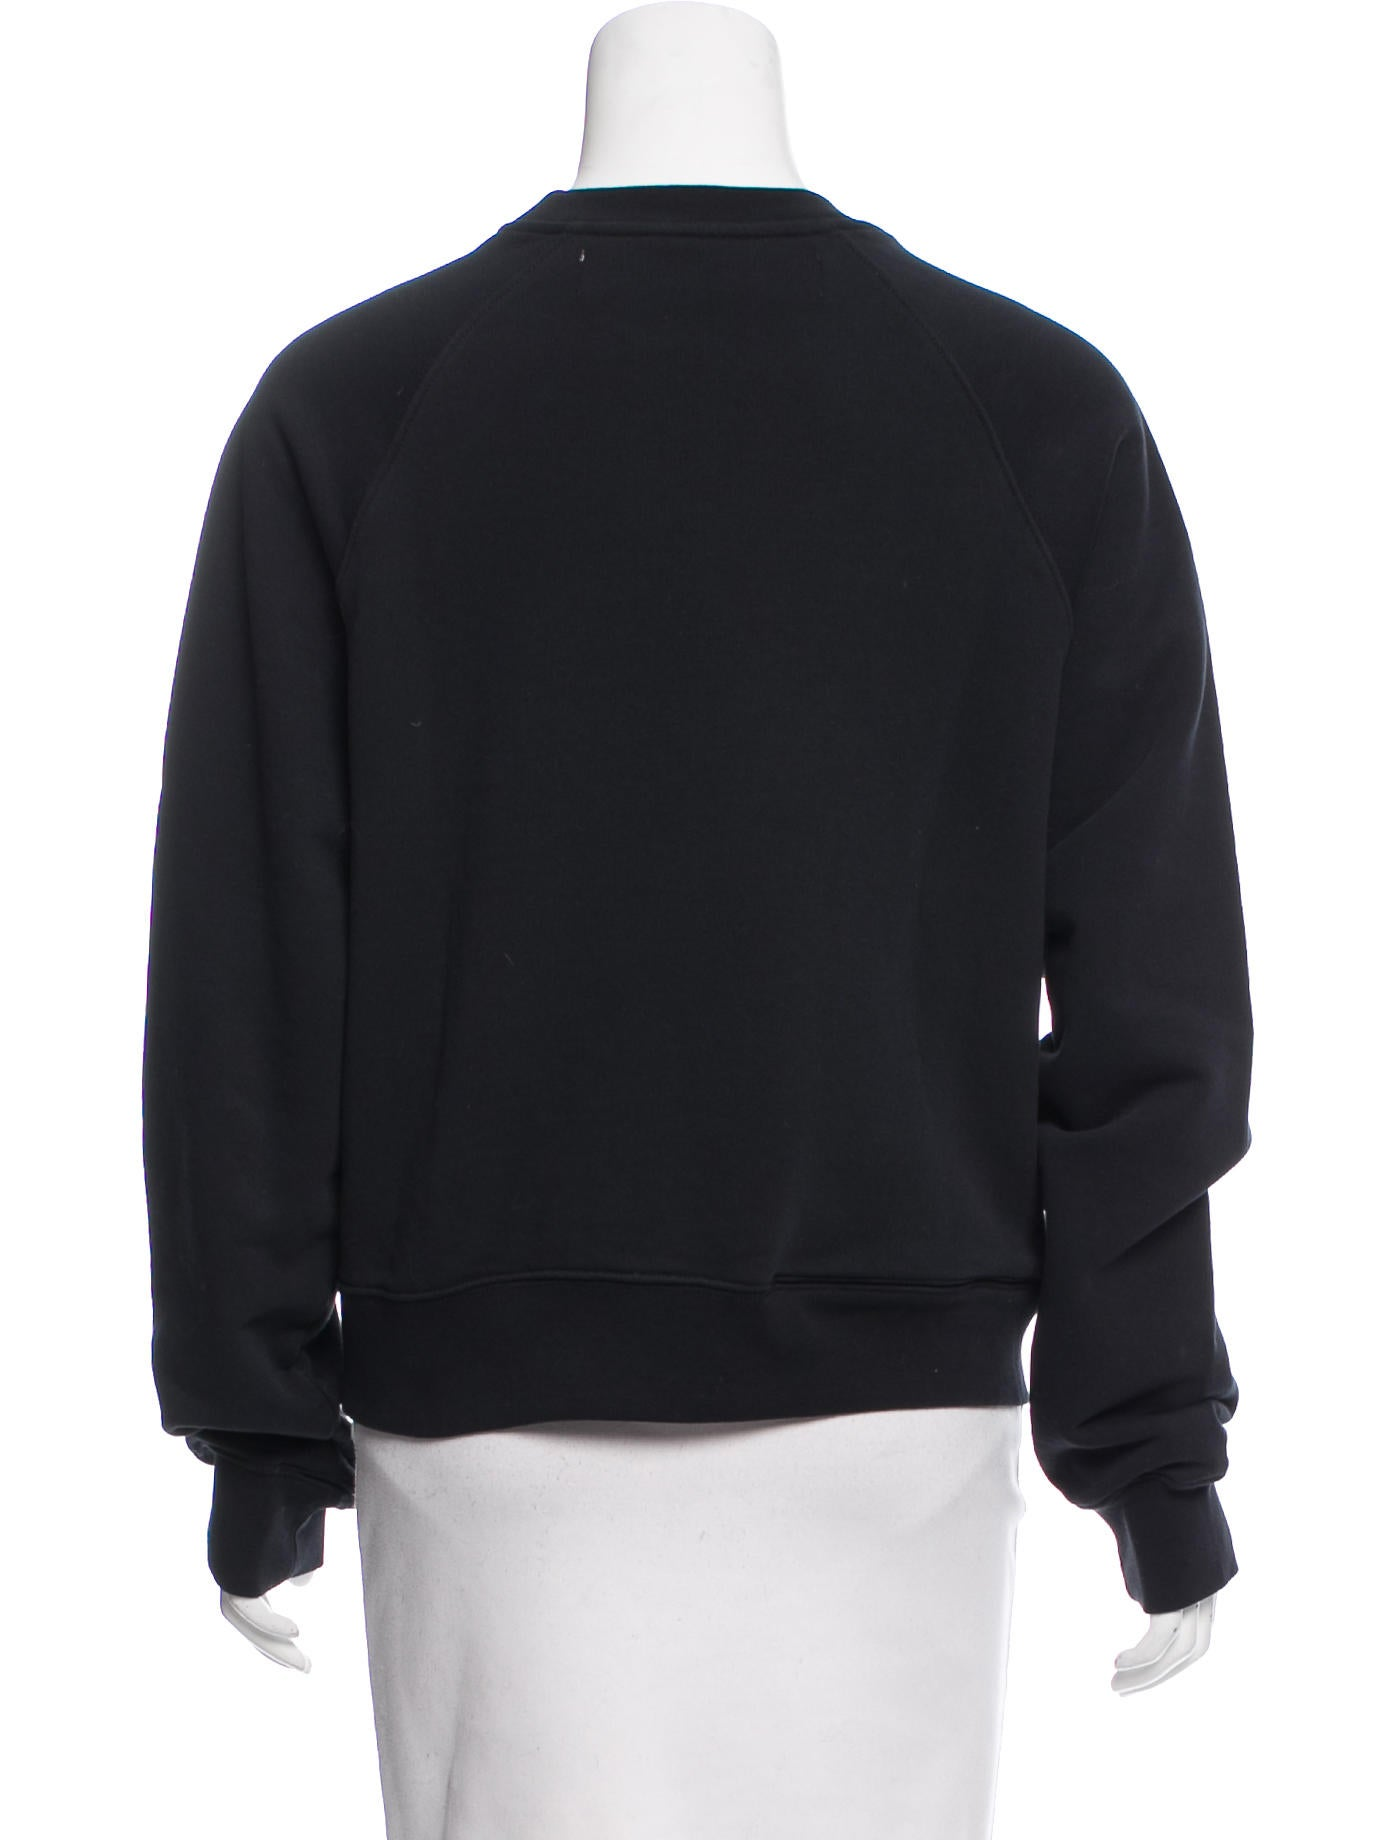 2019b3f2a401 Off-White x Virgil Abloh Zip-Accented Pullover Sweatshirt - Clothing ...